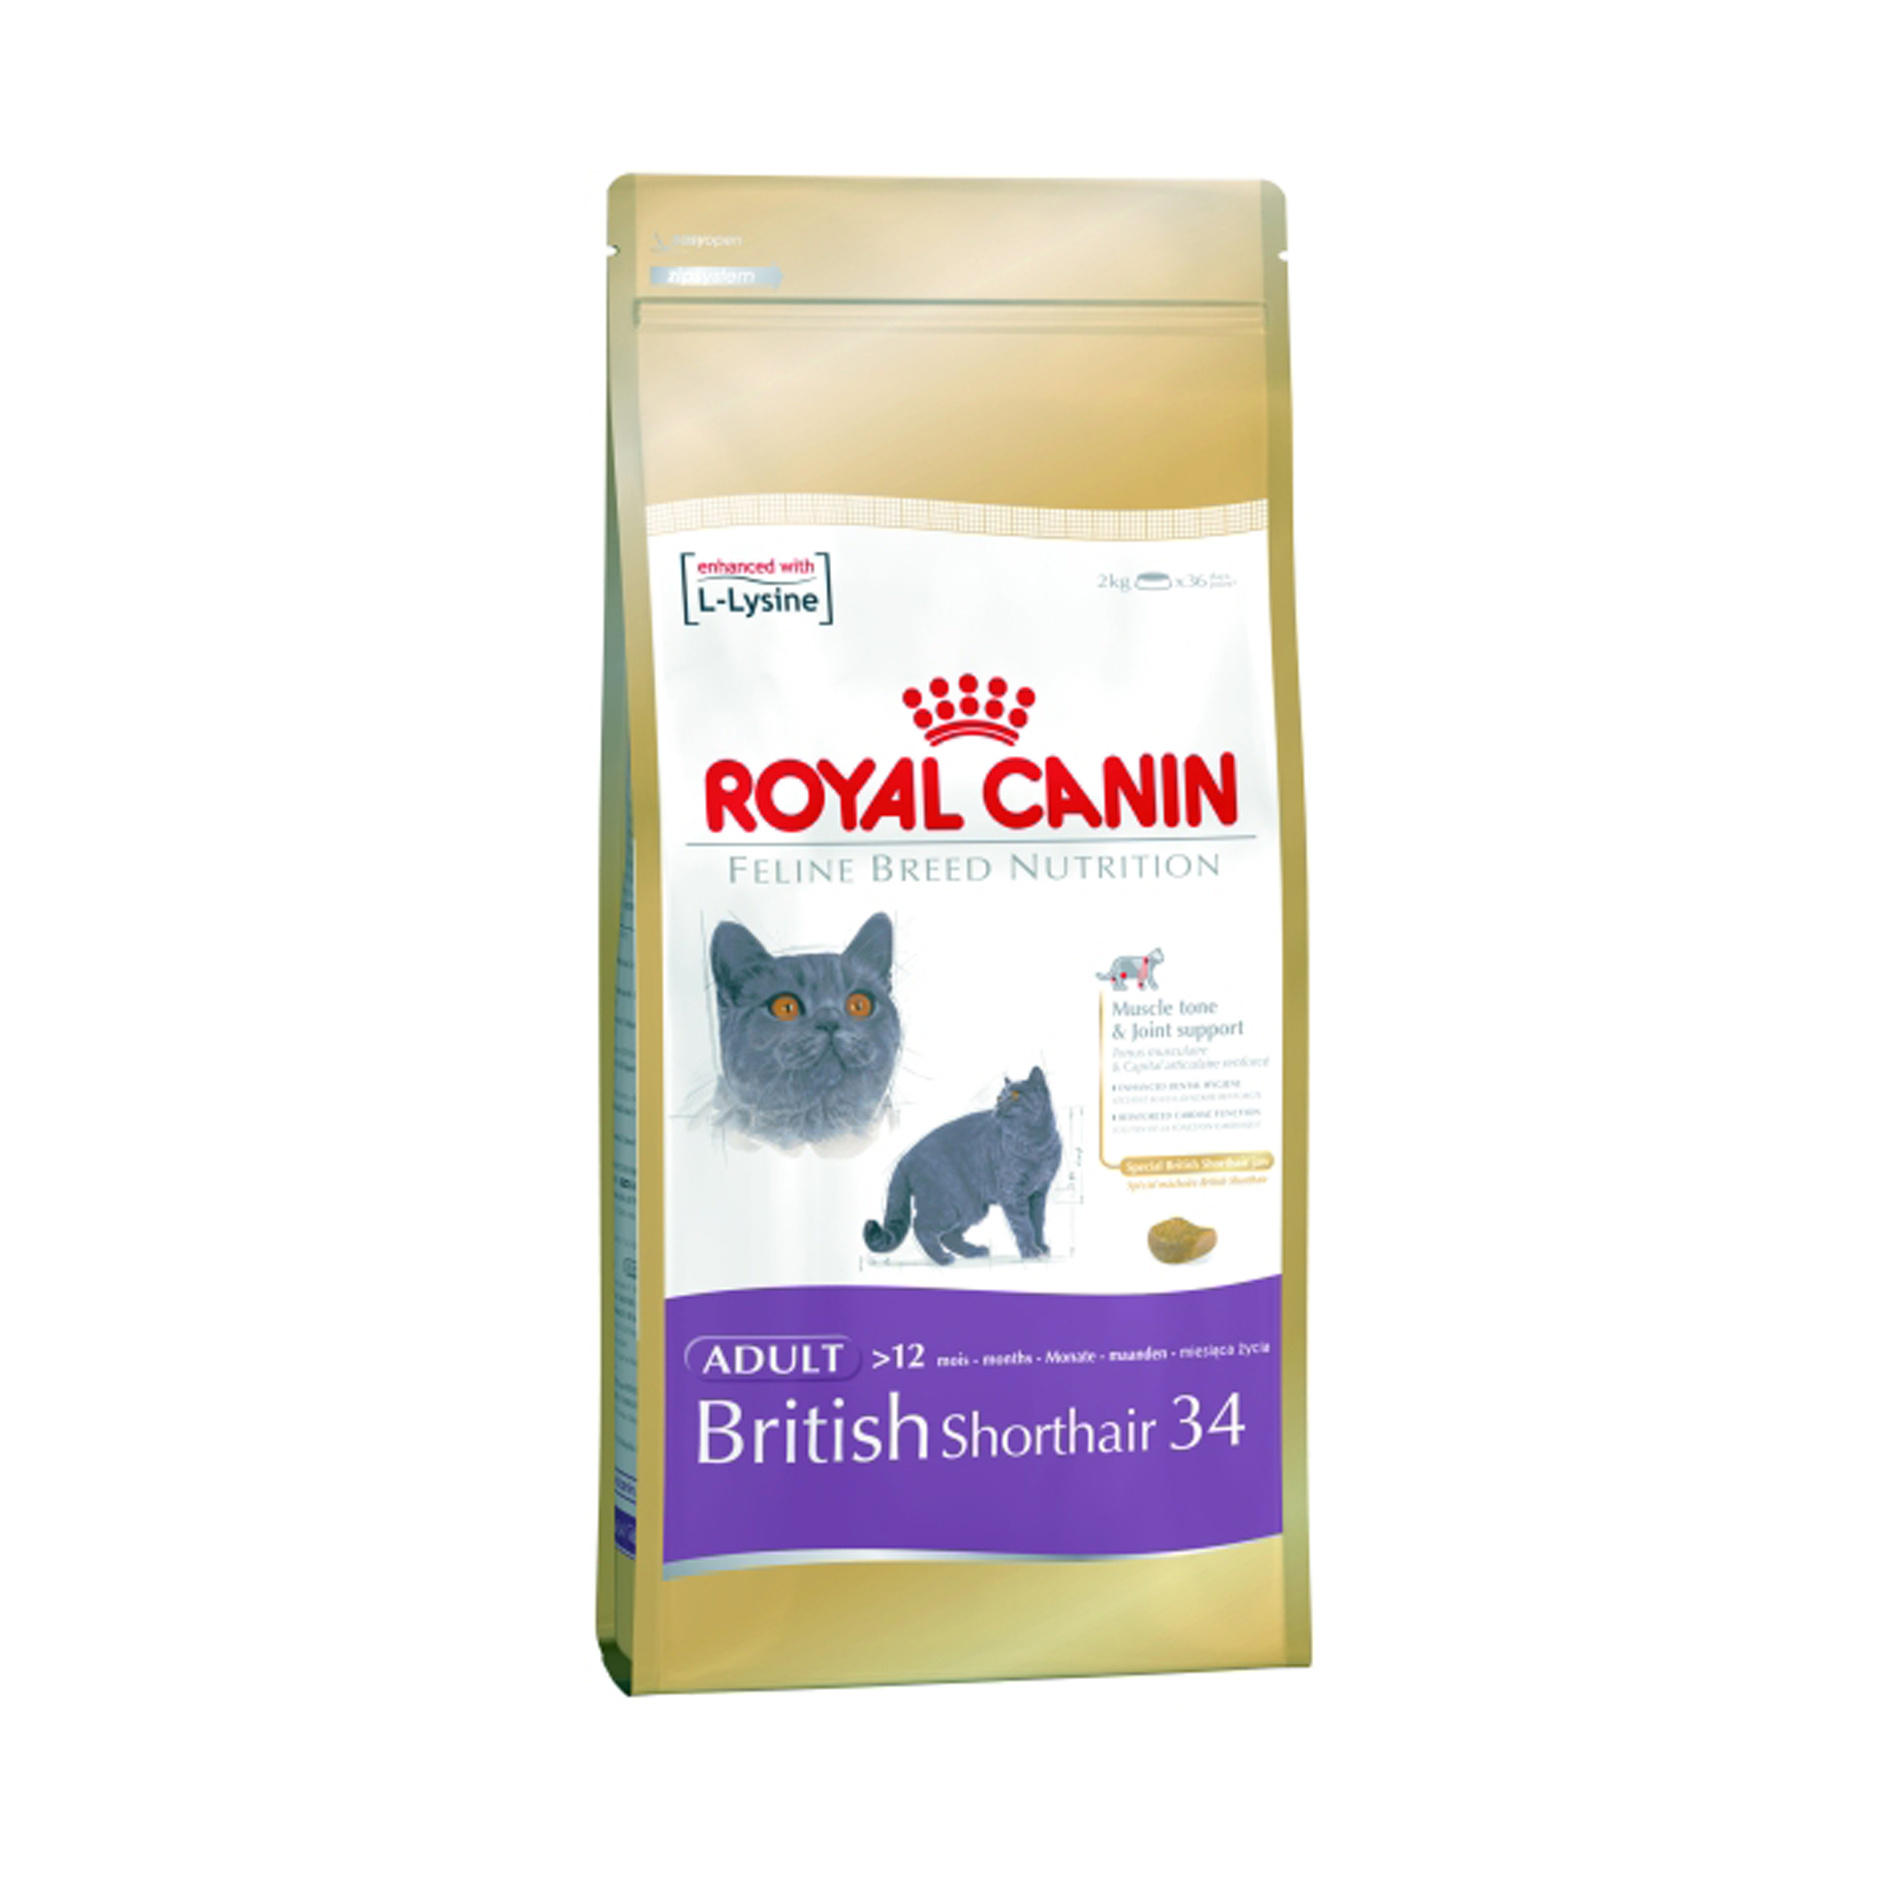 royal canin feline breed nutrition british shorthair adult 34 ebay. Black Bedroom Furniture Sets. Home Design Ideas